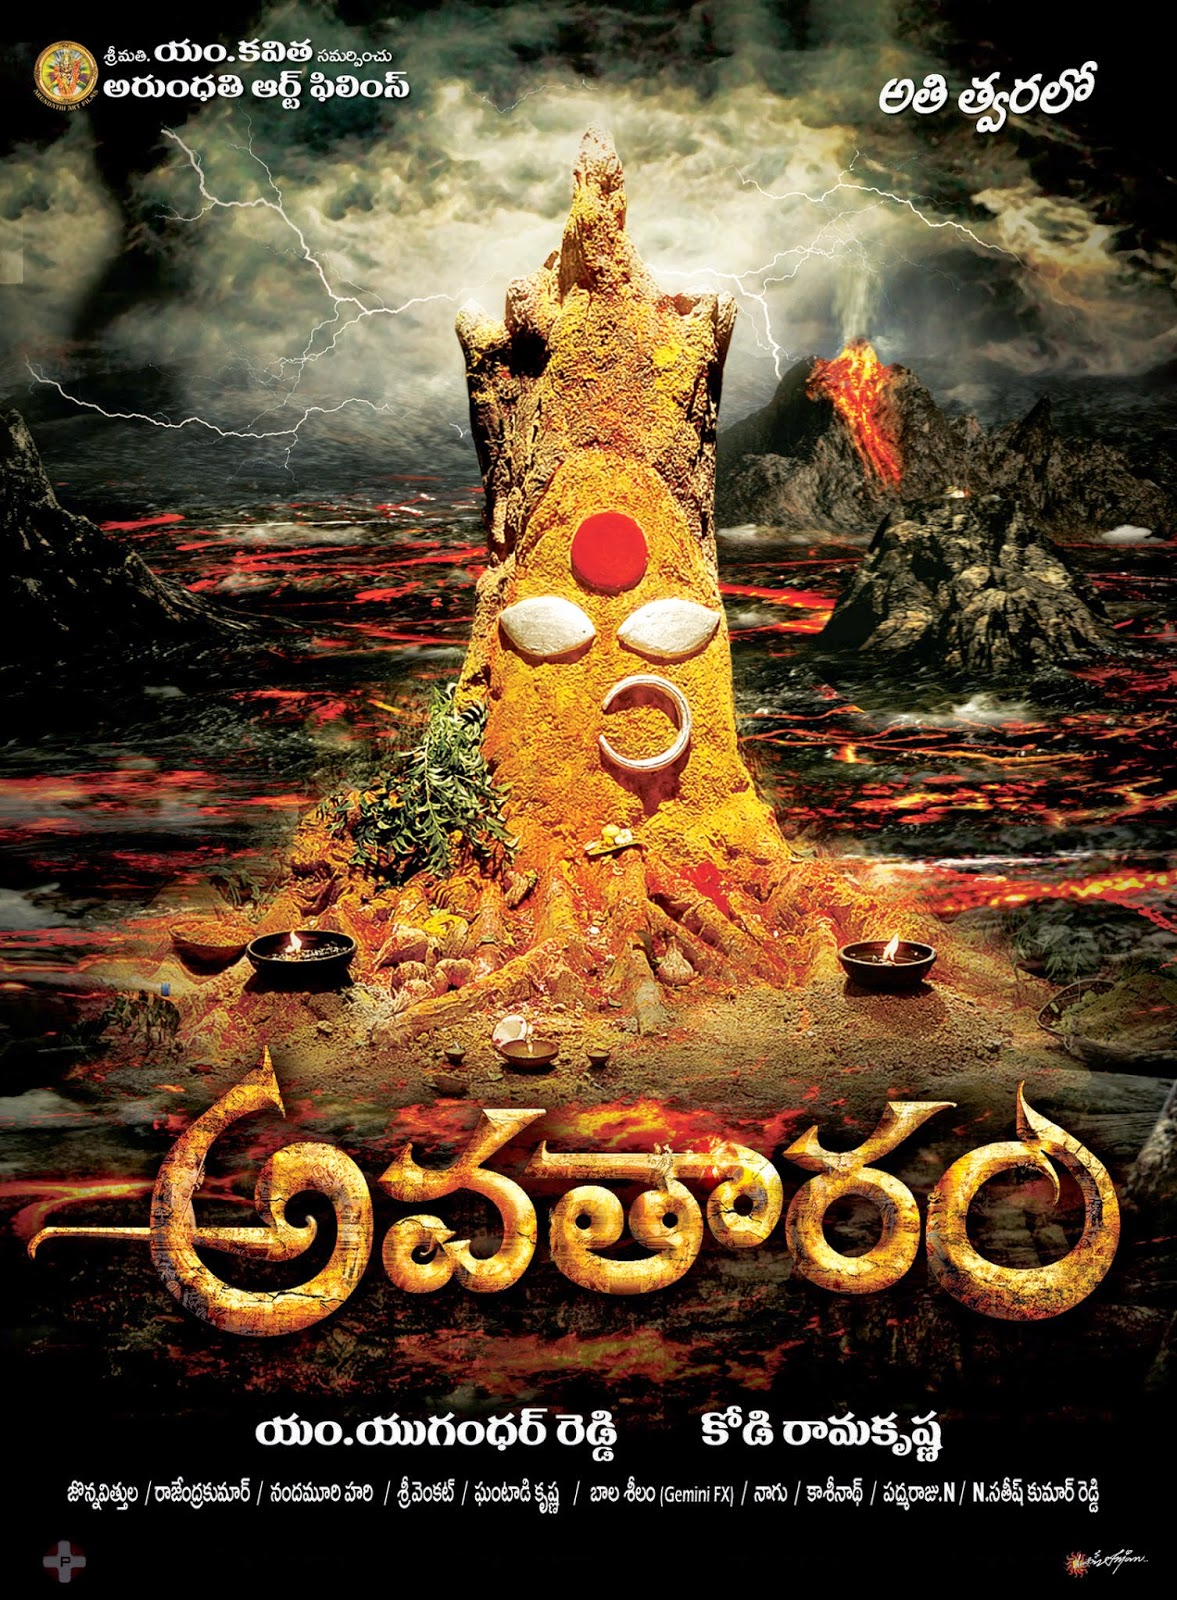 Avatharam 2014, Watch Avataram Telugu Movie Online, Avatharam (Telugu)